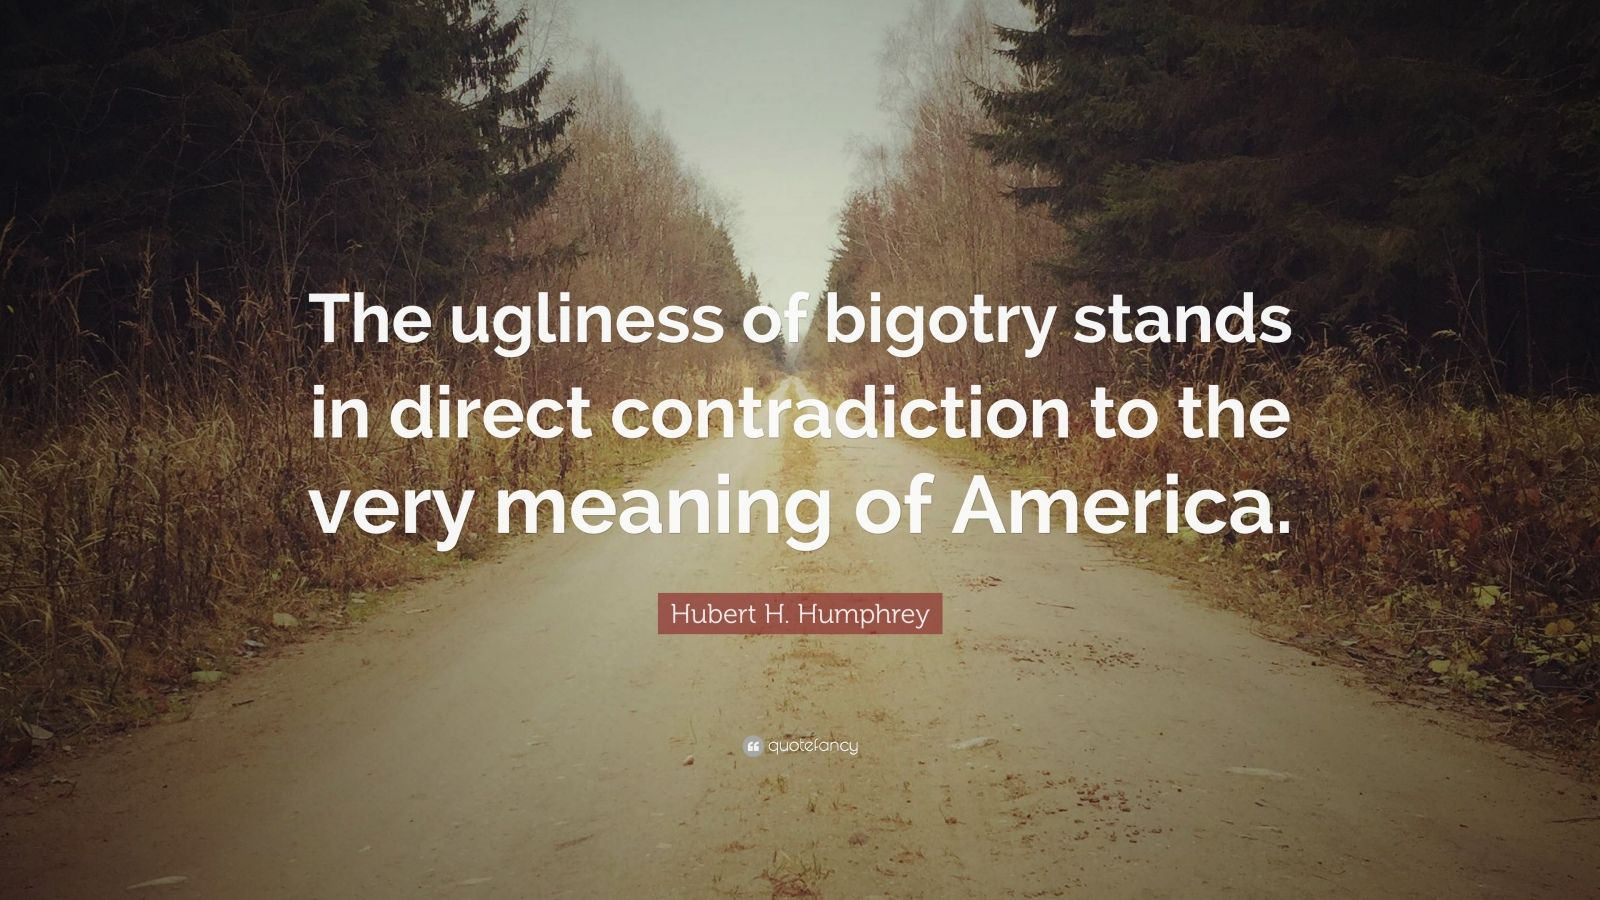 """Hubert H. Humphrey Quote: """"The ugliness of bigotry stands in direct contradiction to the very meaning of America."""""""